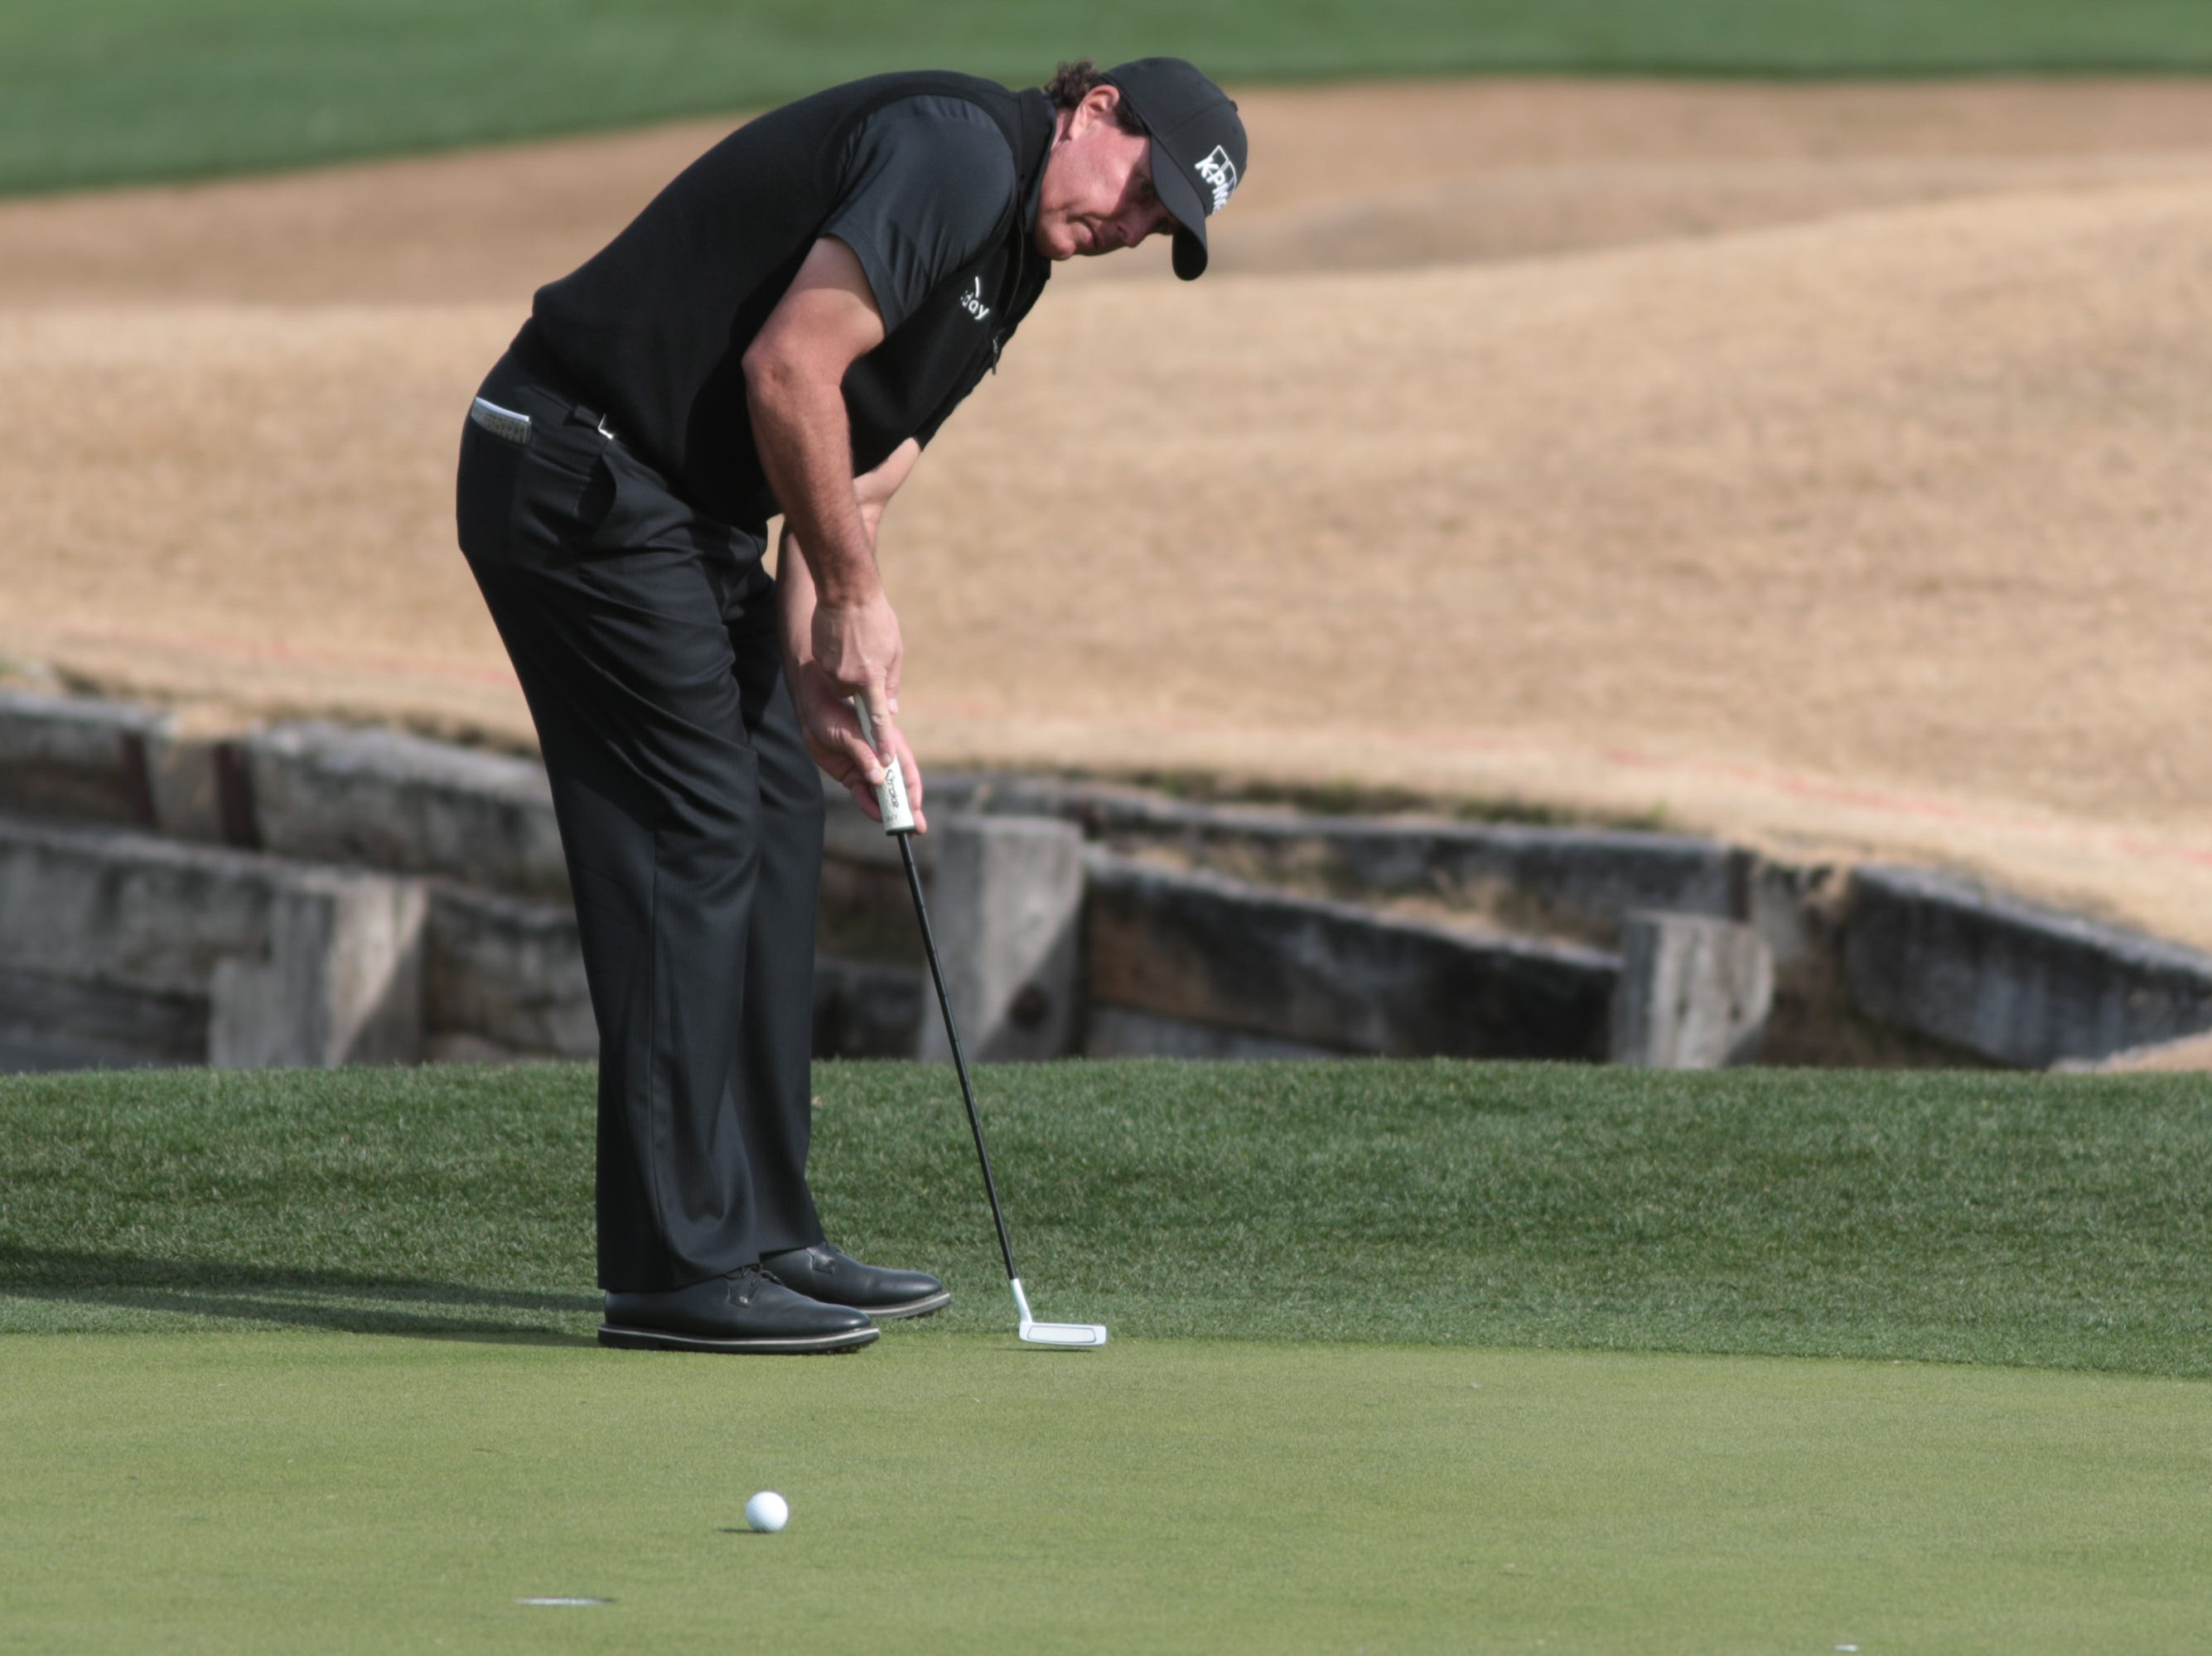 Phil Mickelson putts on the 7th hole of the 2019 Desert Classic, Sunday, January 20, 2019.